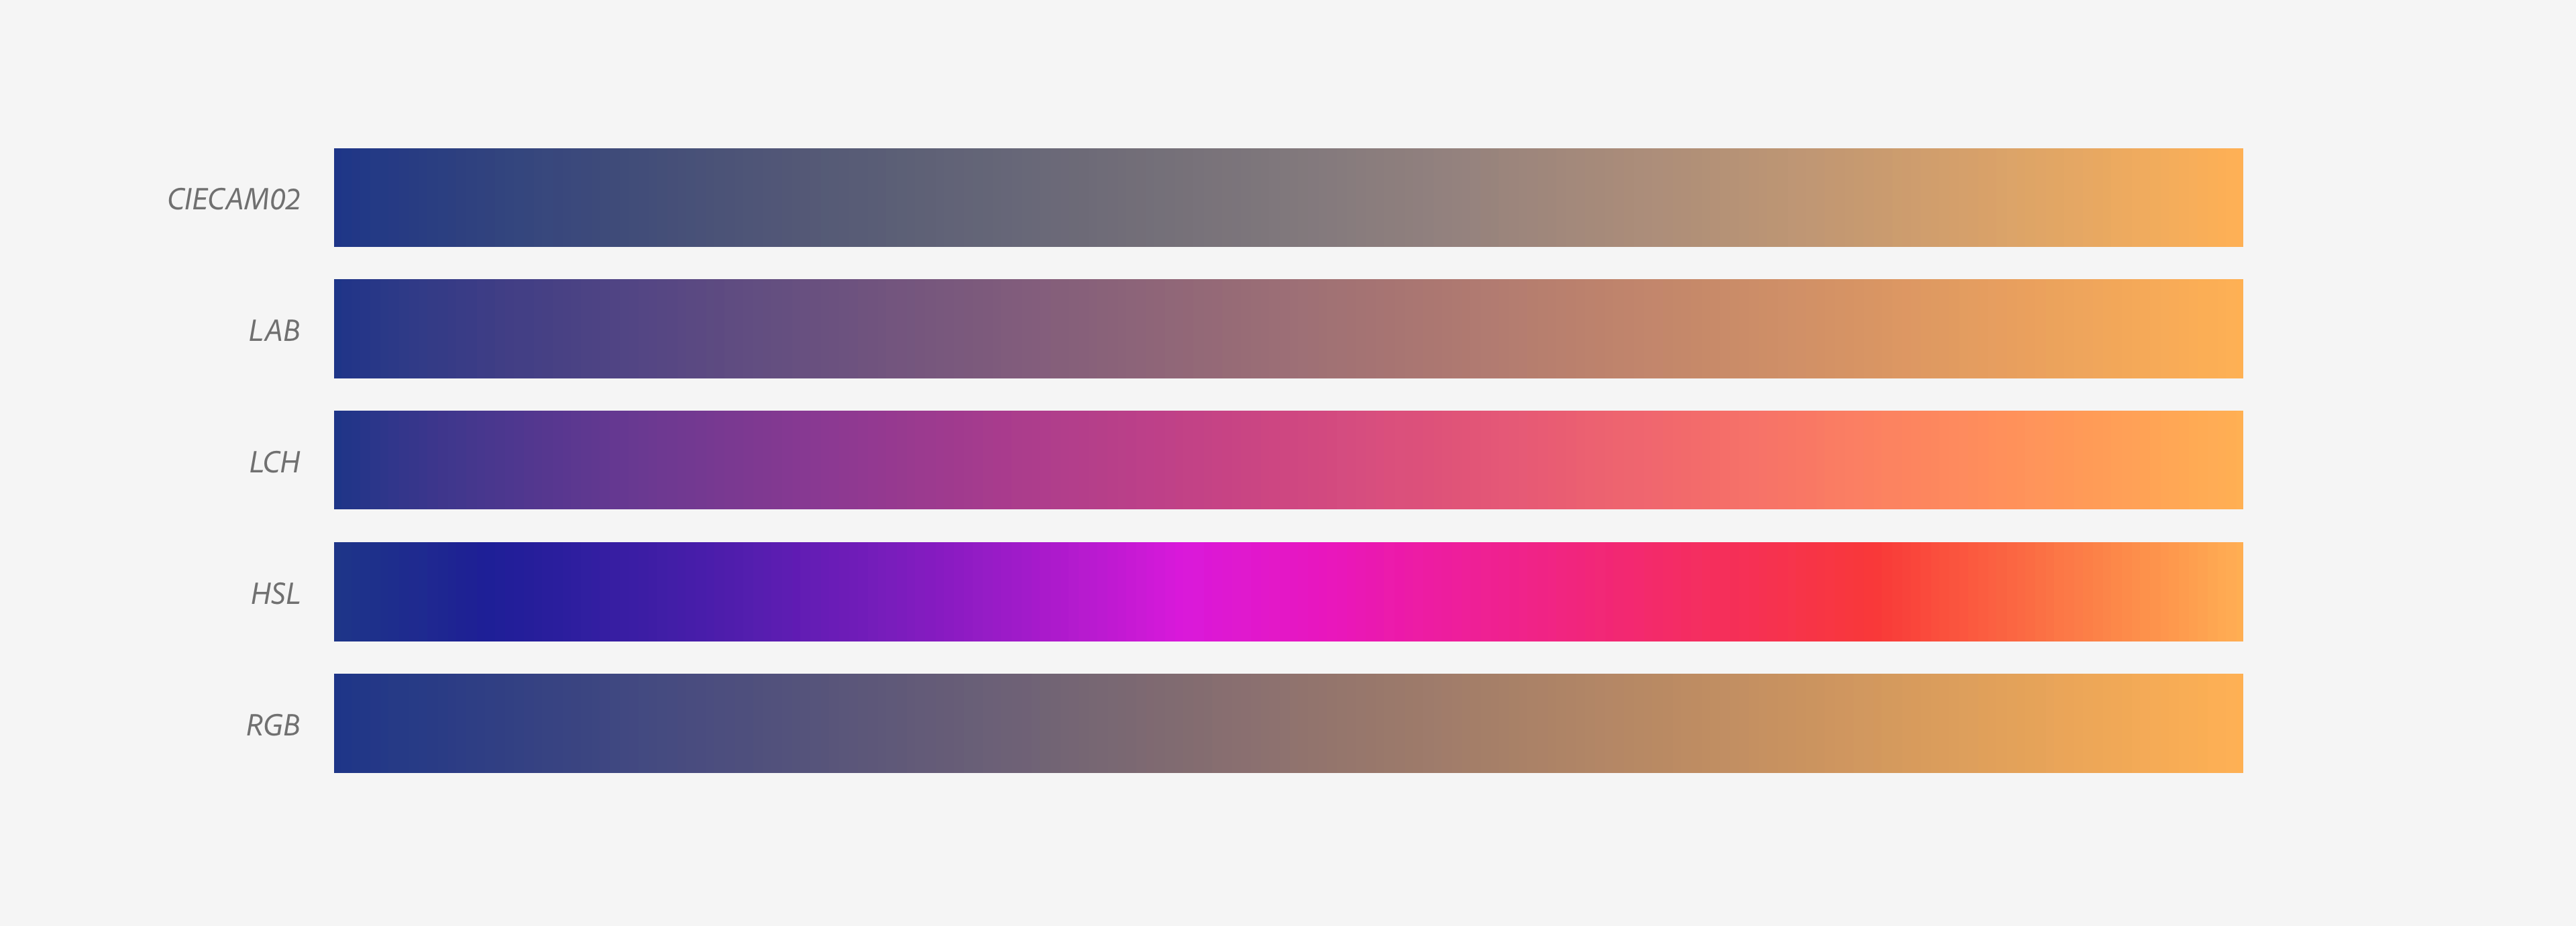 Five gradients from dark blue to orange with unique appearances